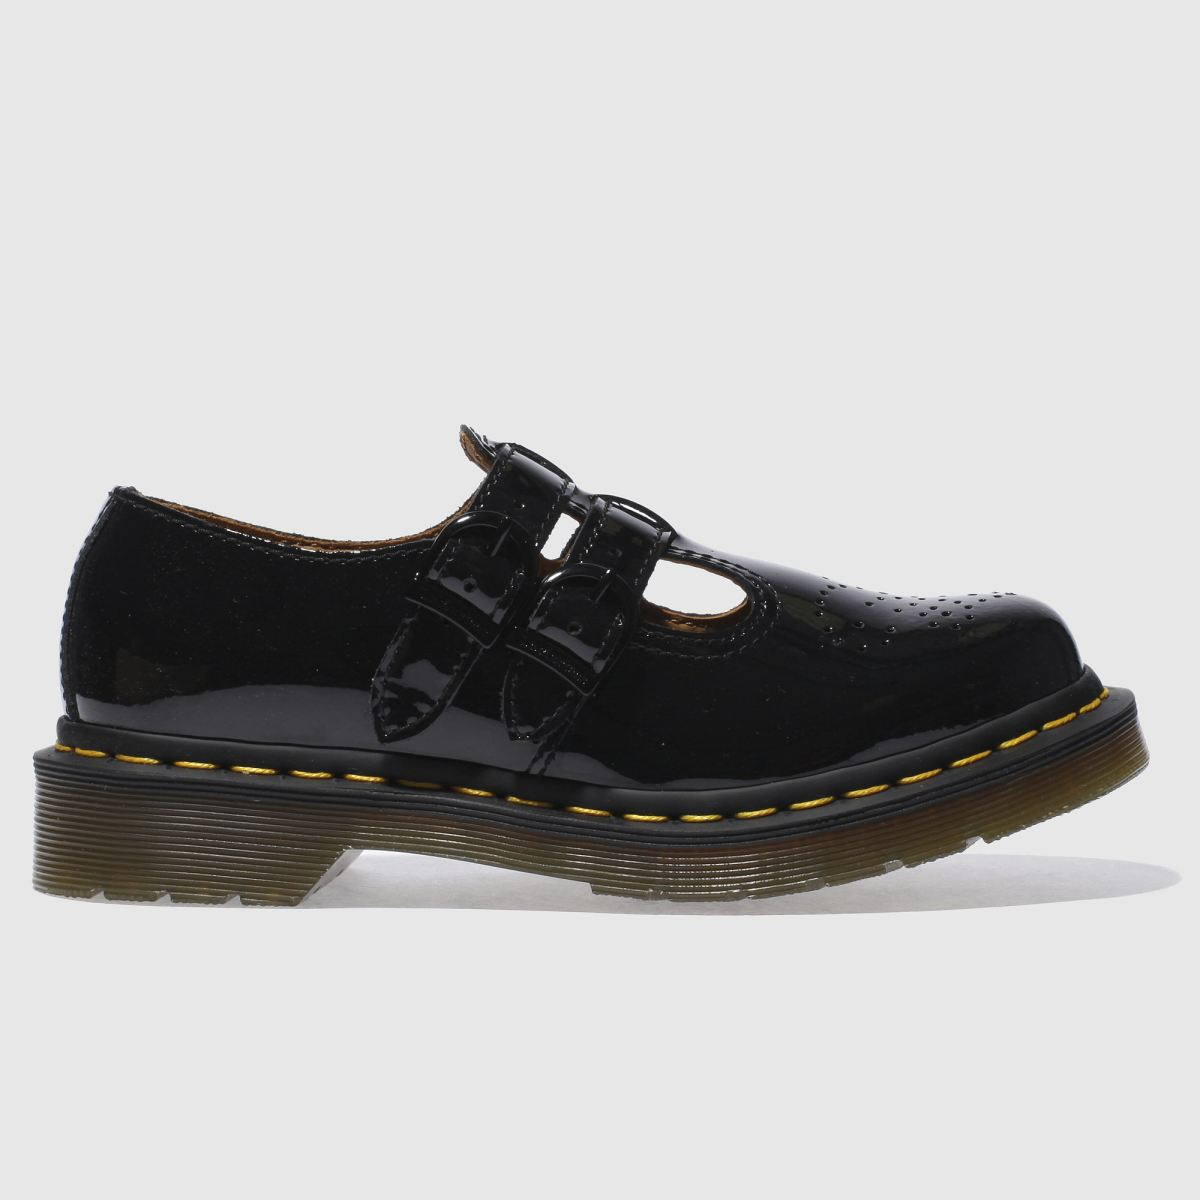 dr martens black 8065 mary jane flat shoes